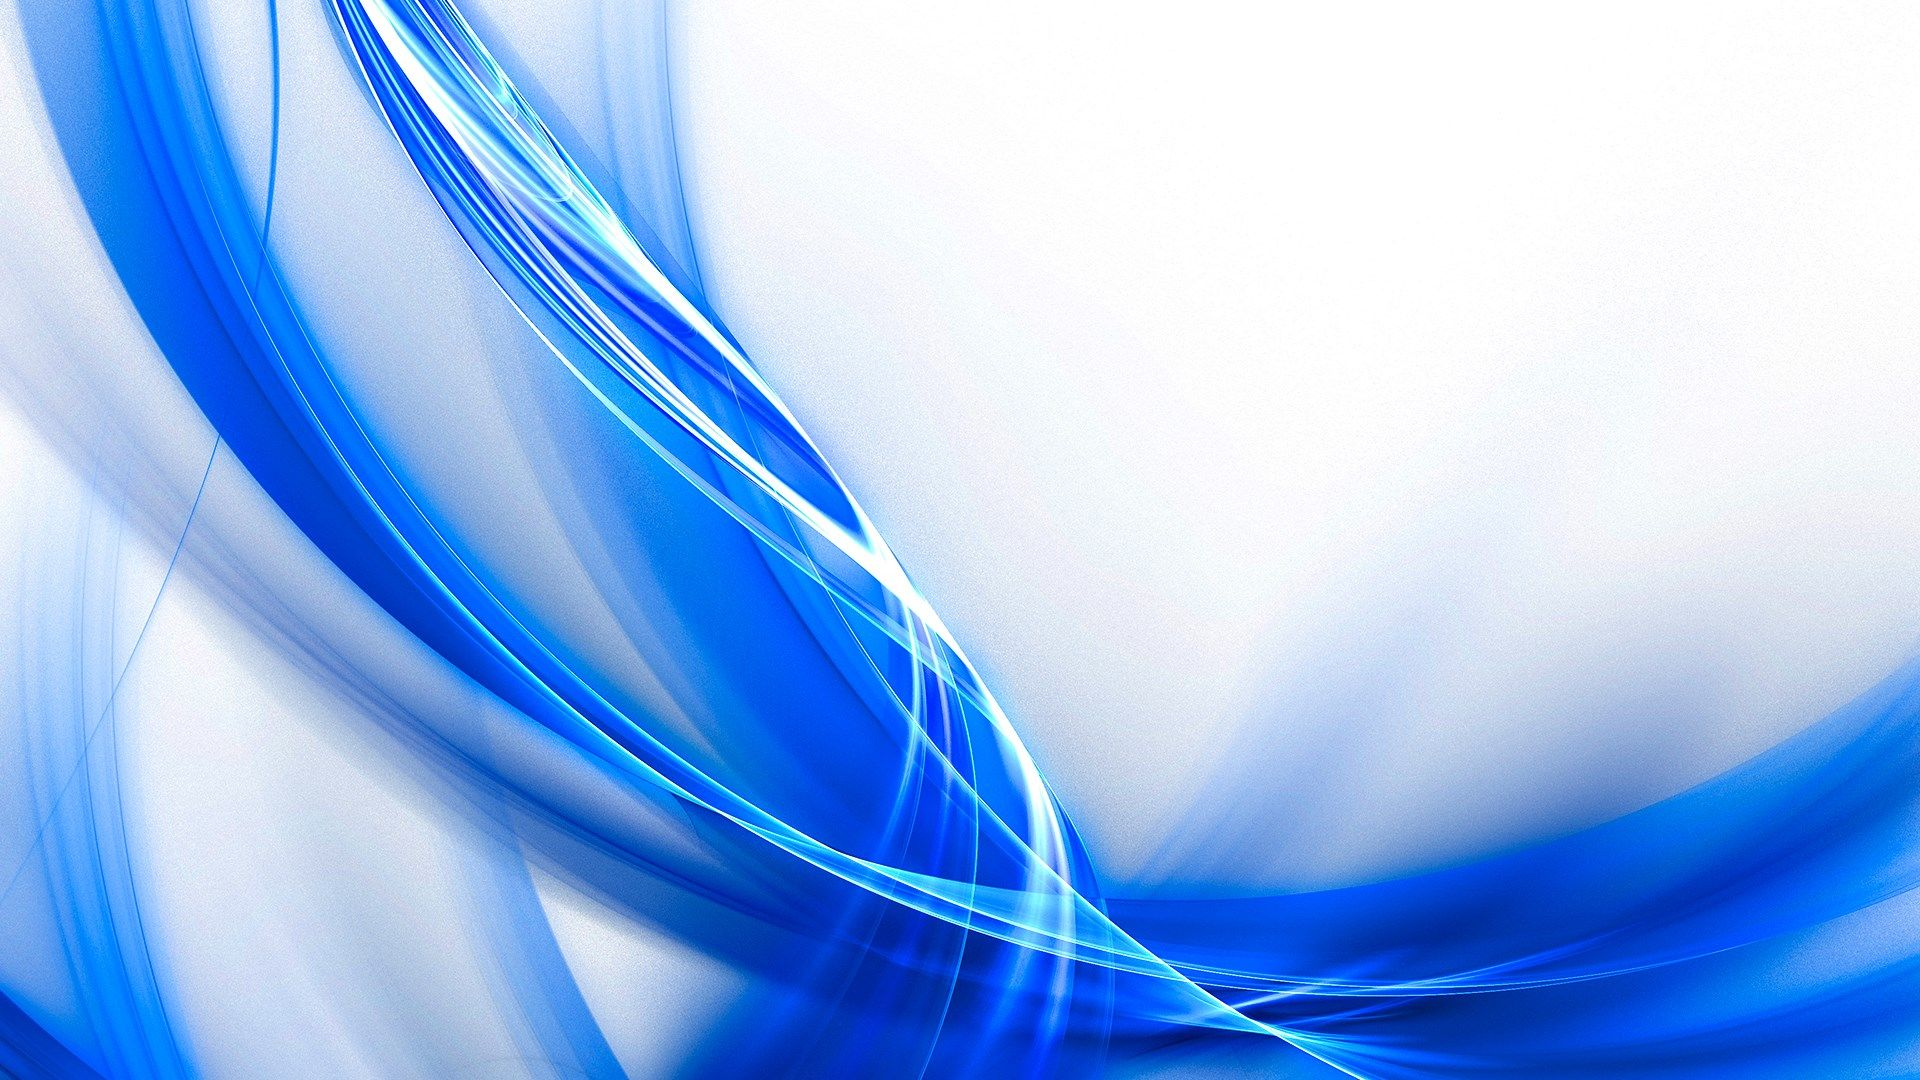 1920x1080 Background High Resolution Blue White Desain